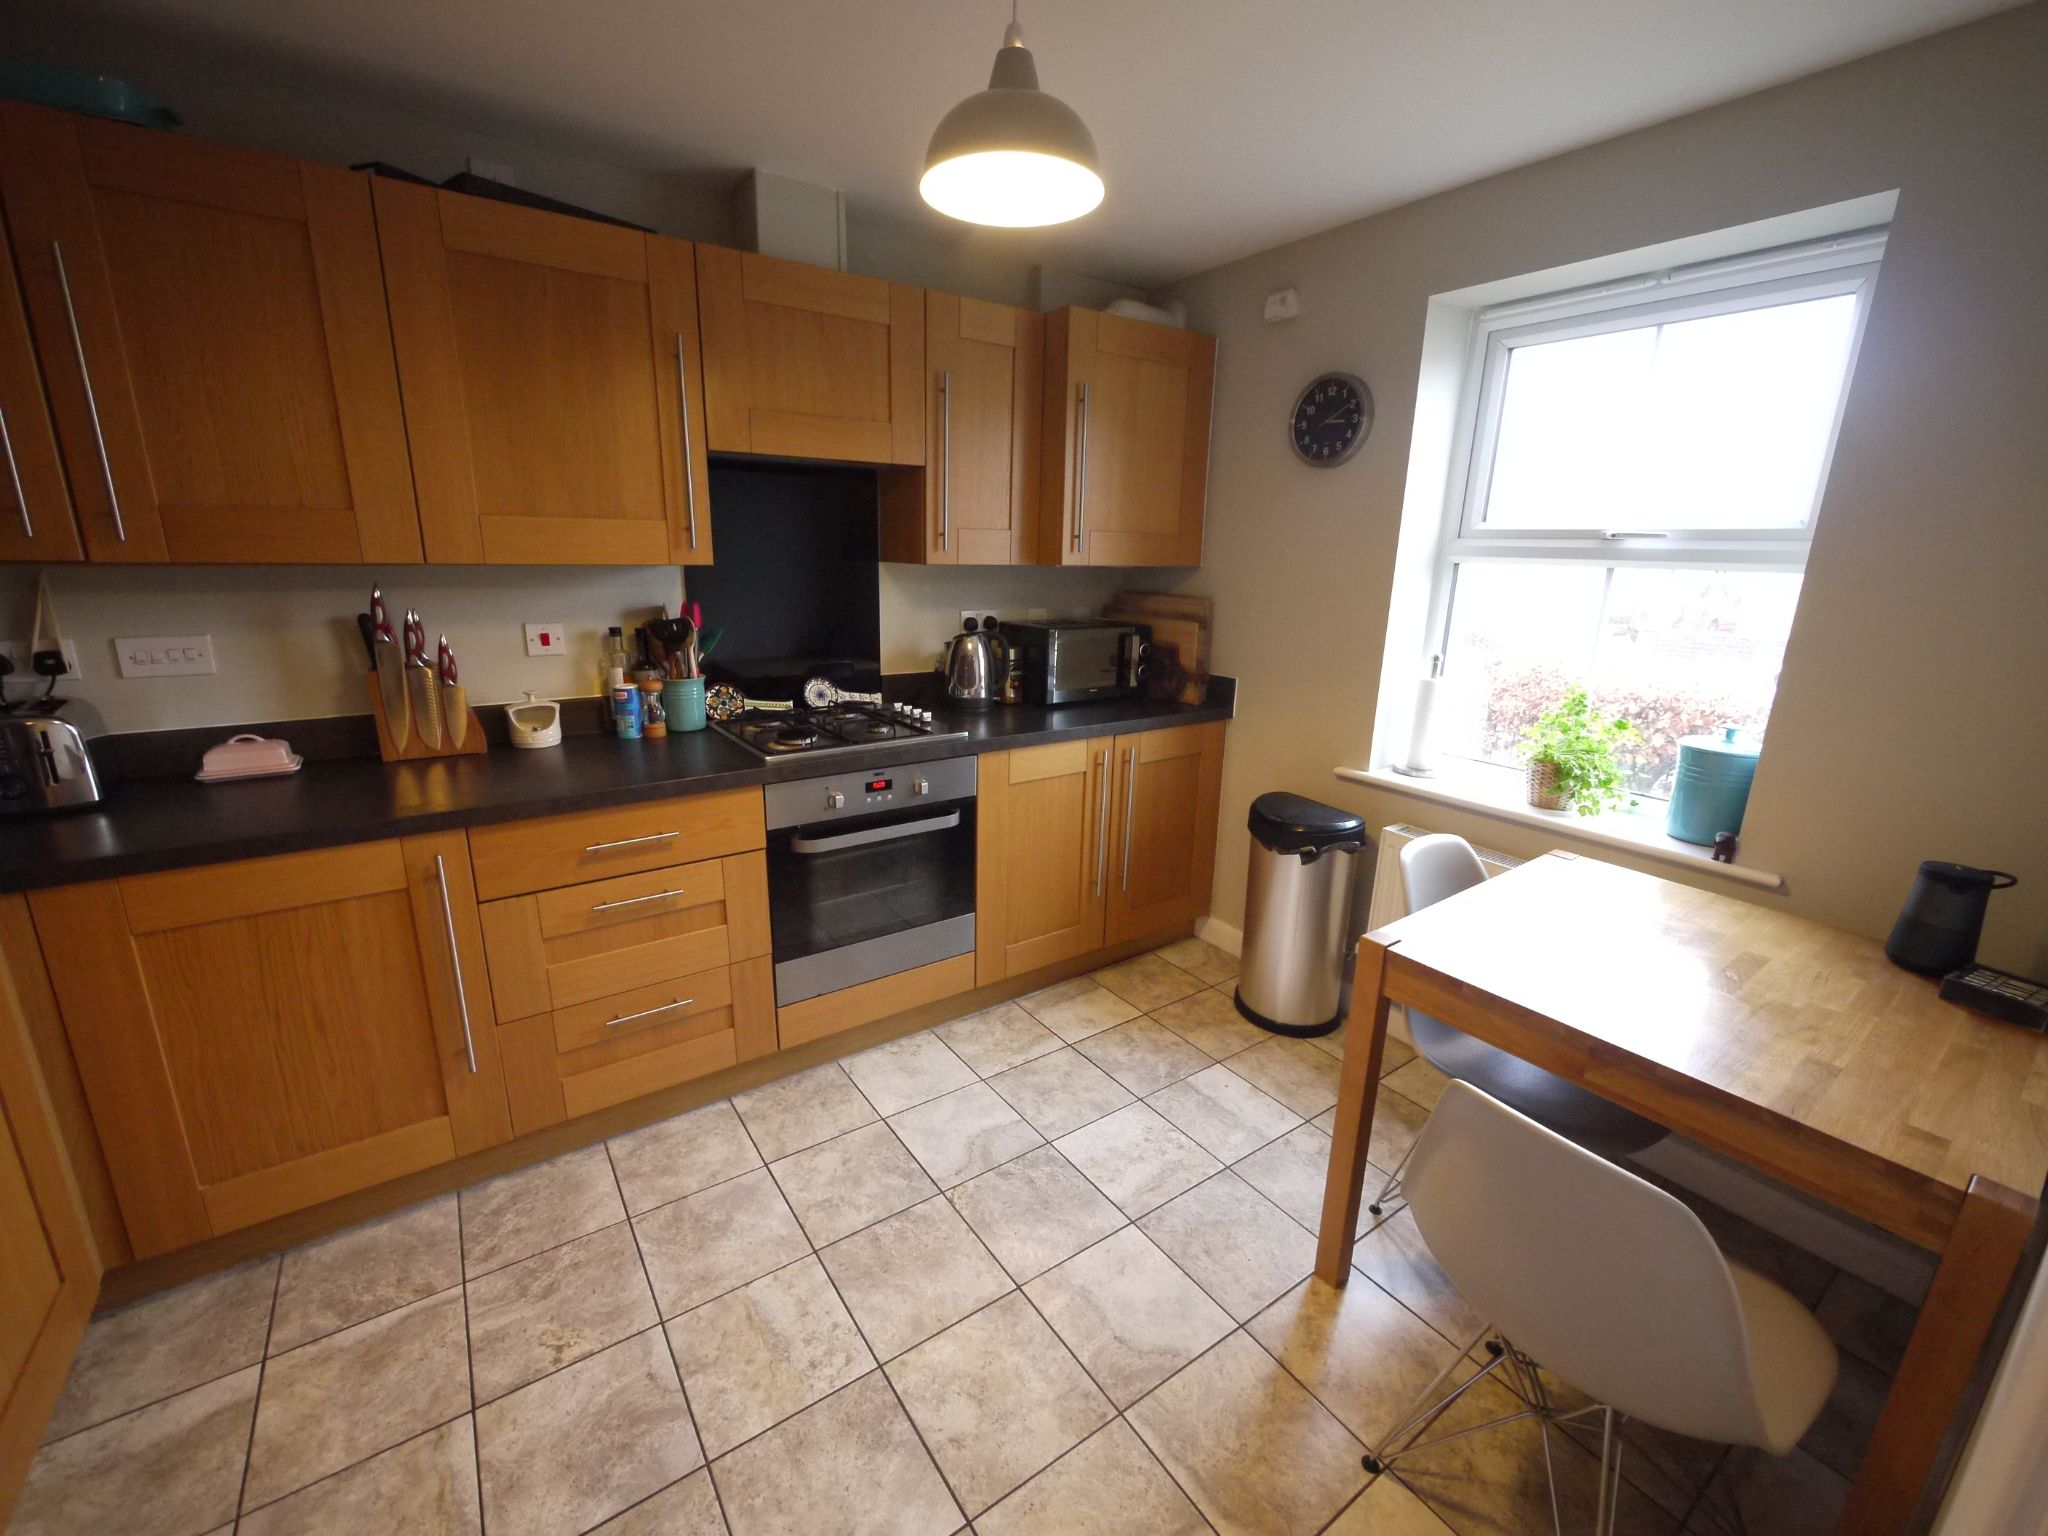 3 bedroom end terraced house SSTC in Cleckheaton - Dining Kitchen 1.